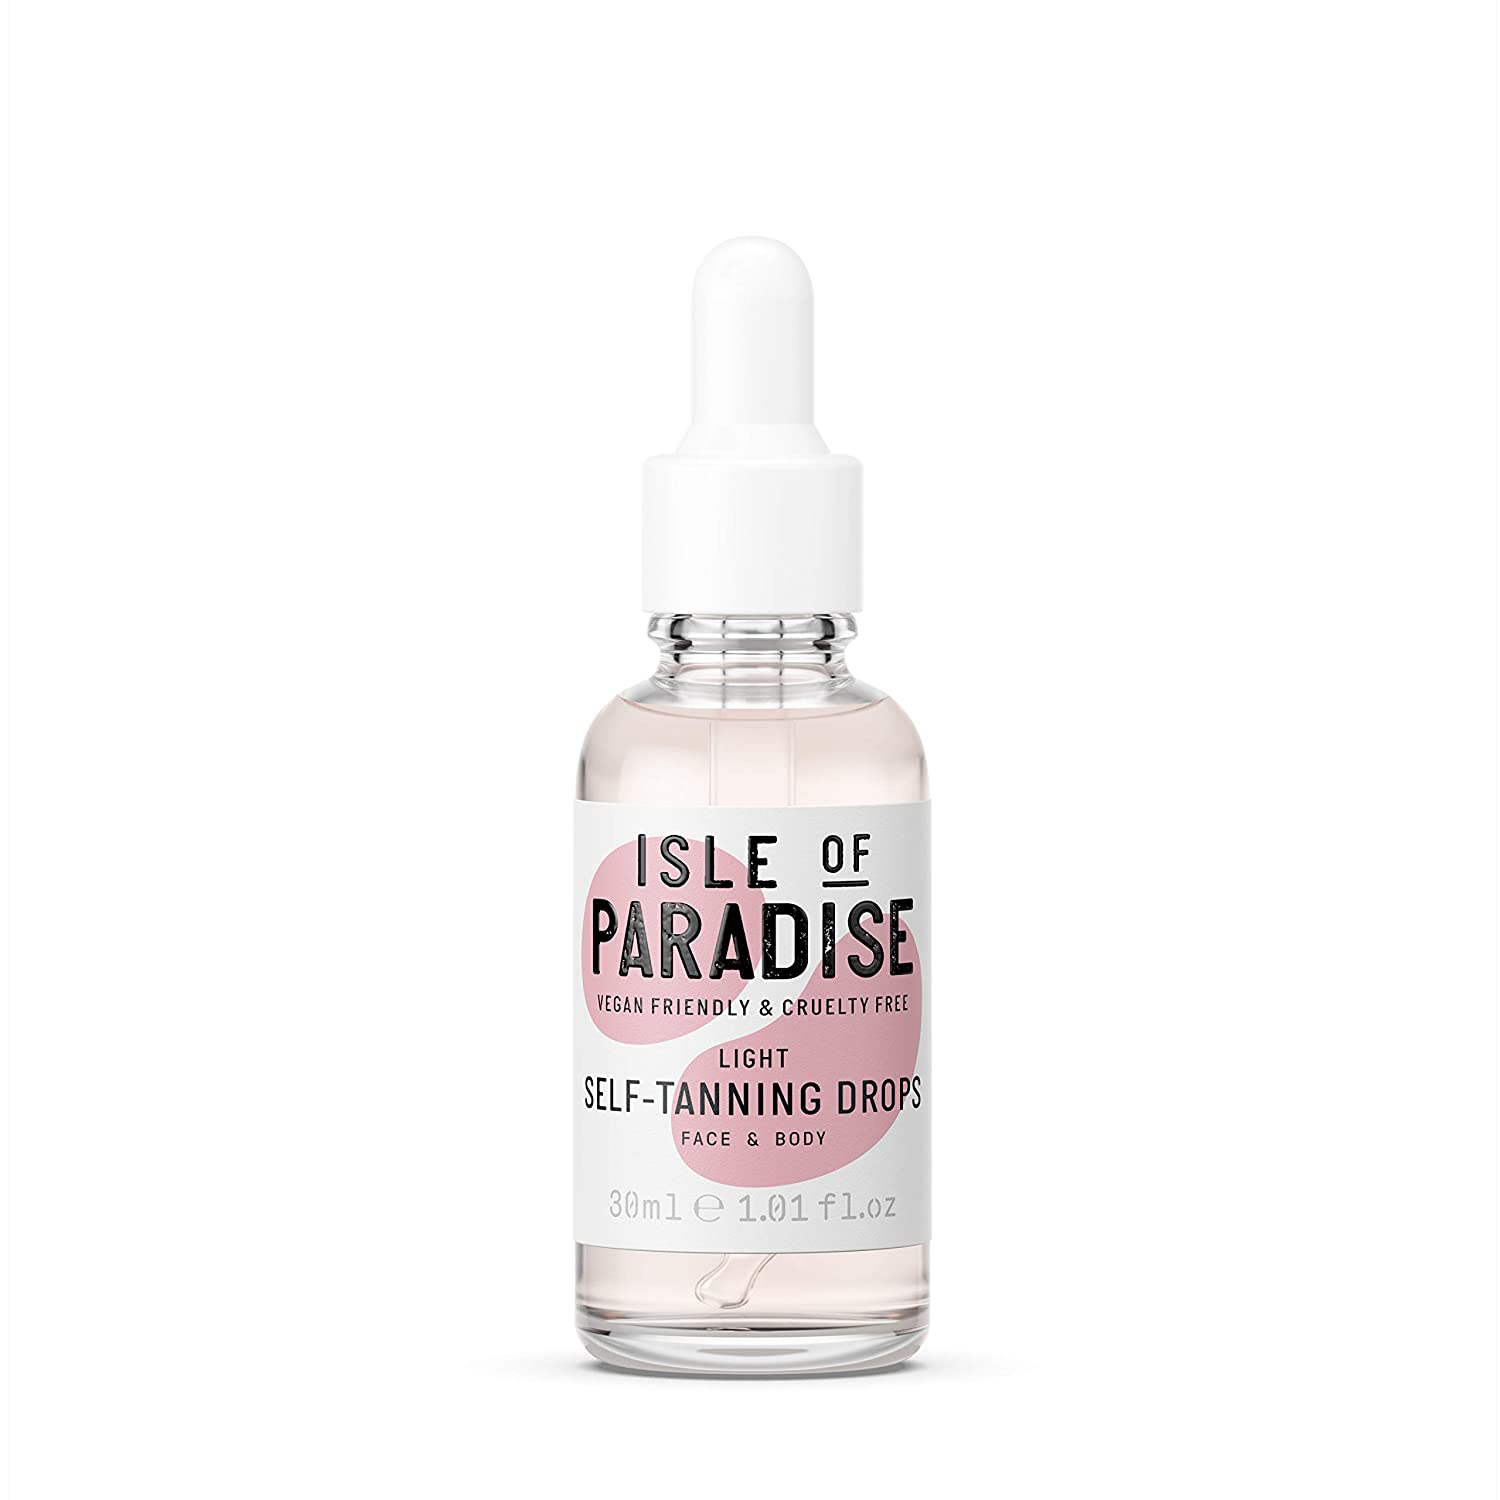 STYLECASTER | Best self tanning drops for face